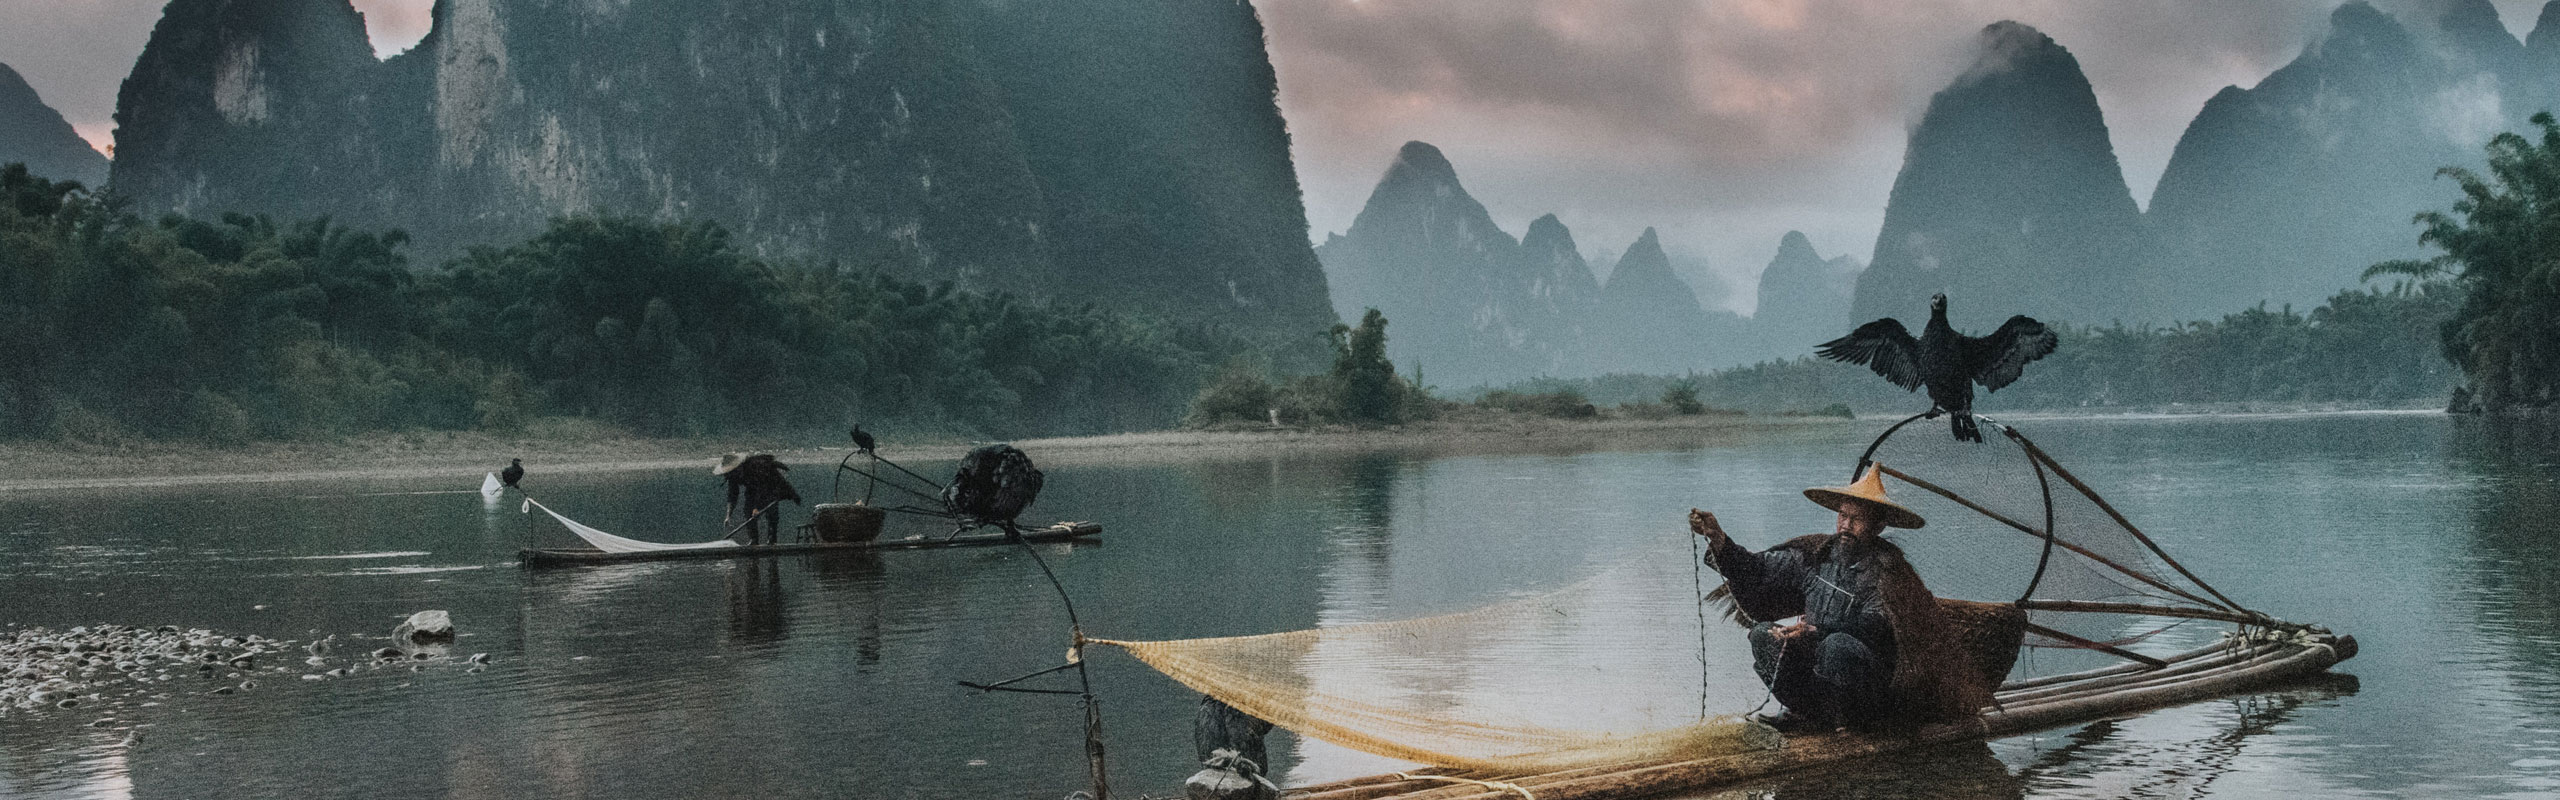 8-Day Beijing & Guilin: The Romantic Cities